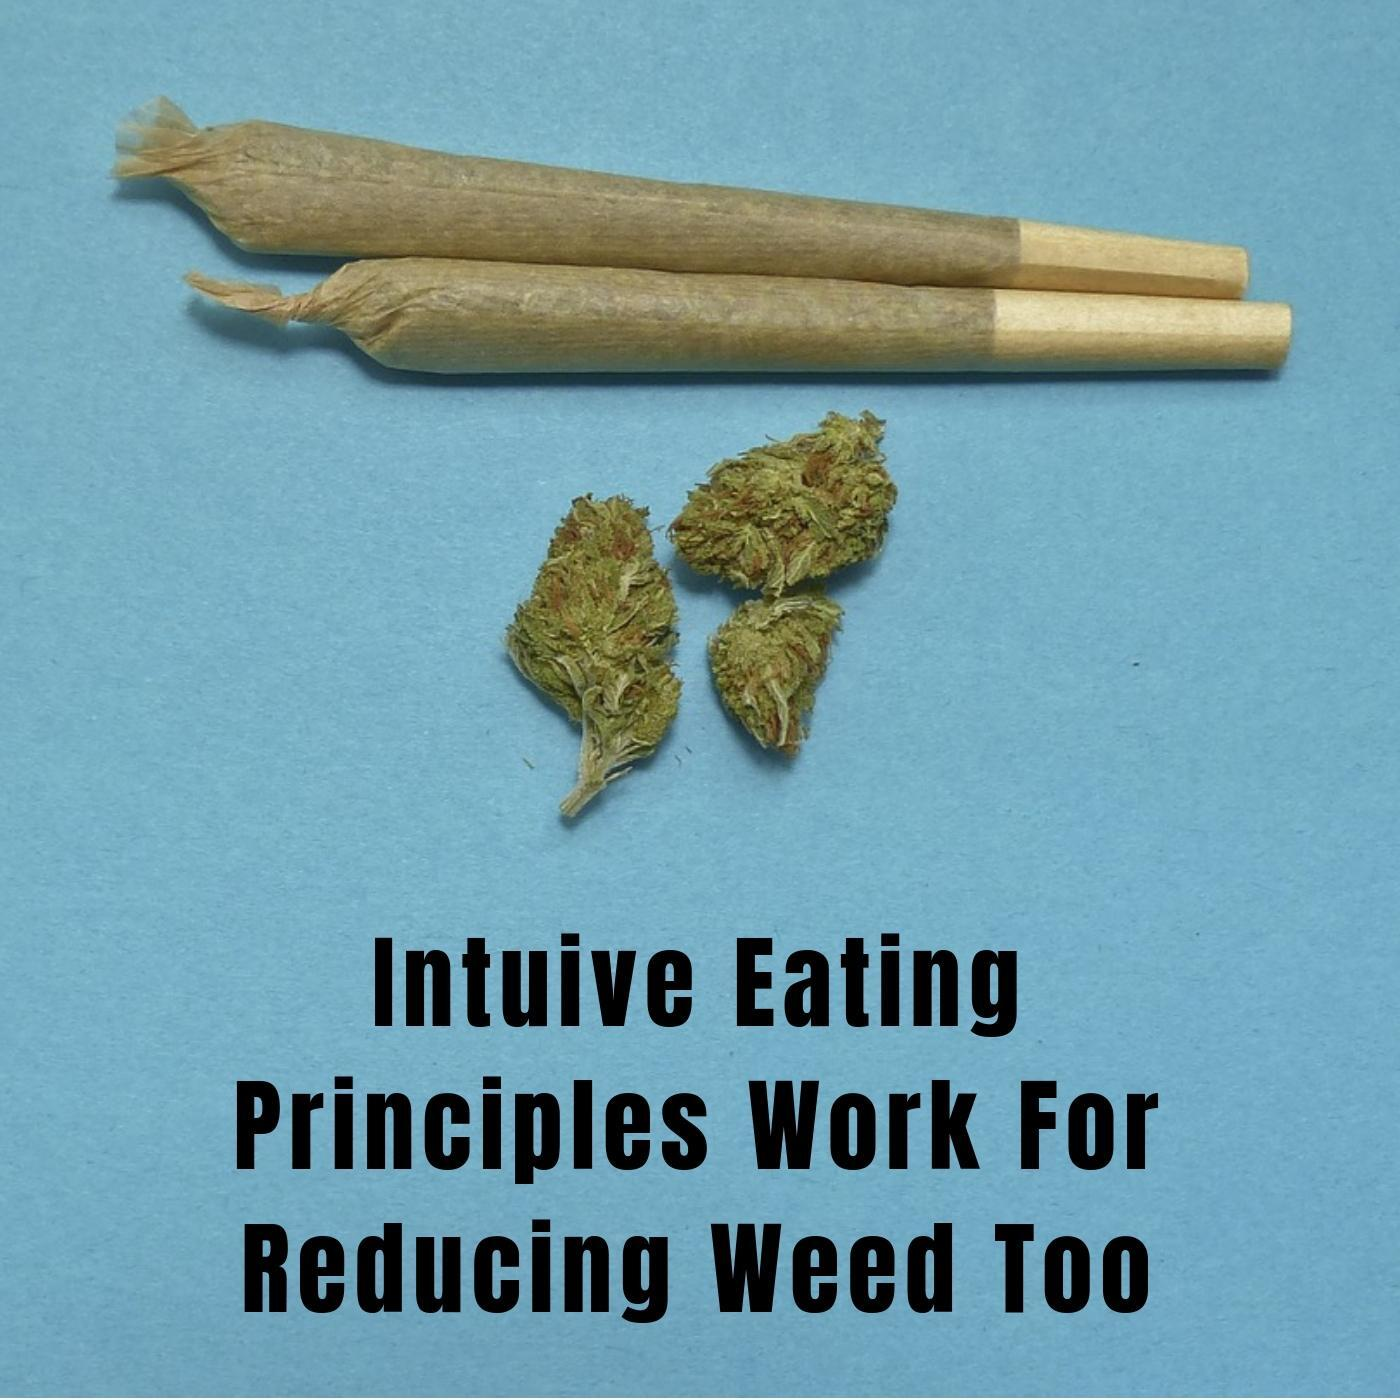 to eat intuitively you must follow intuitive eating principles and these principles work for weed too picture of joint